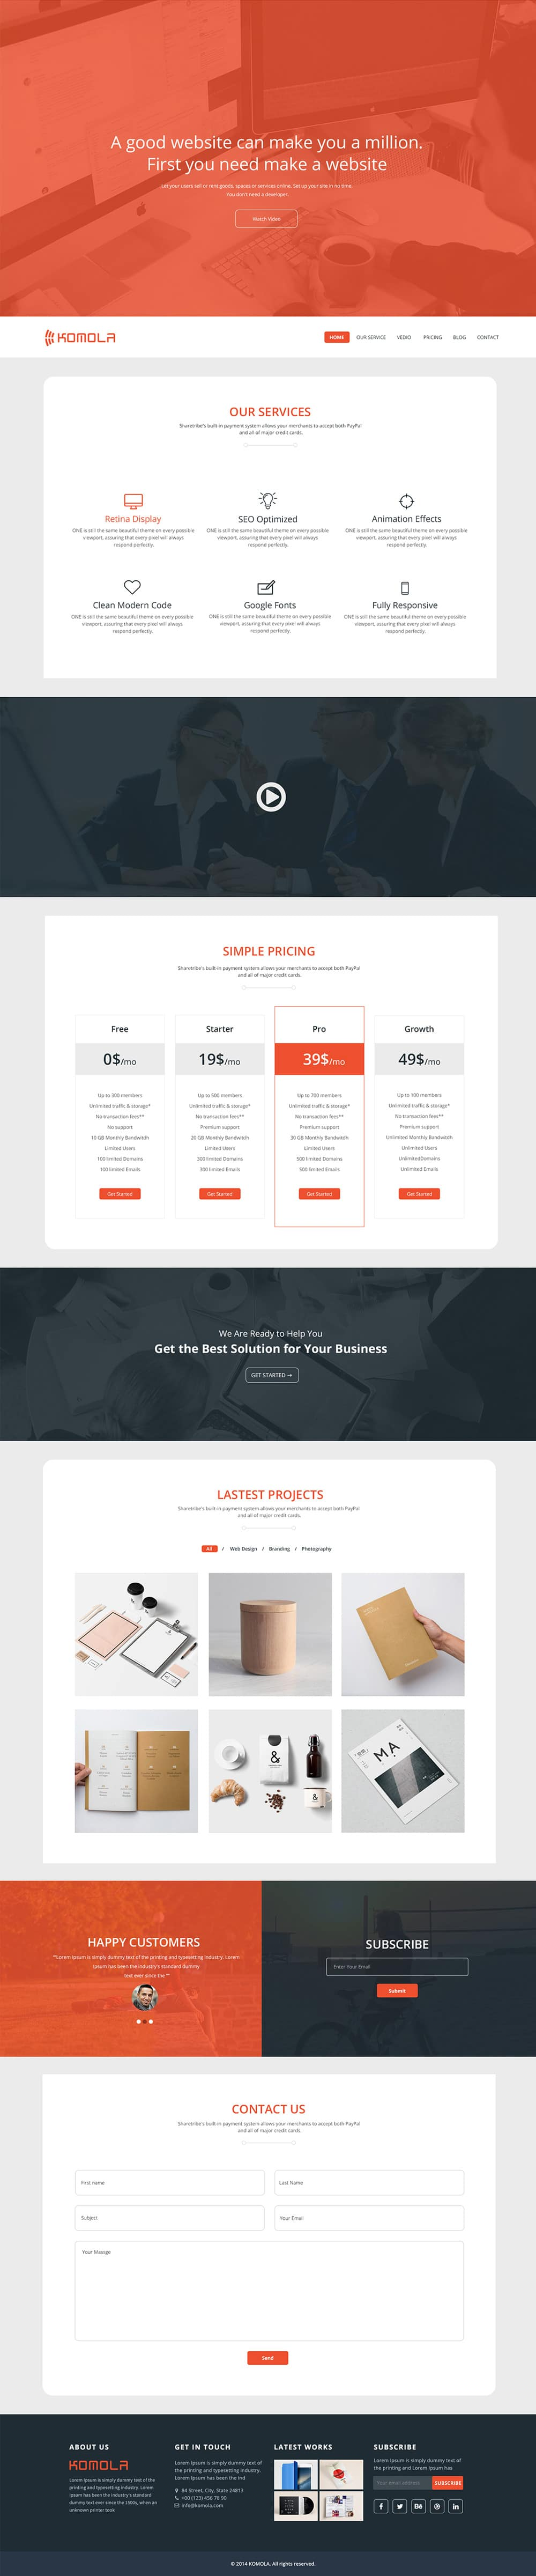 Free corporate and business web templates psd komola free onepage corporate web template psd wajeb Choice Image